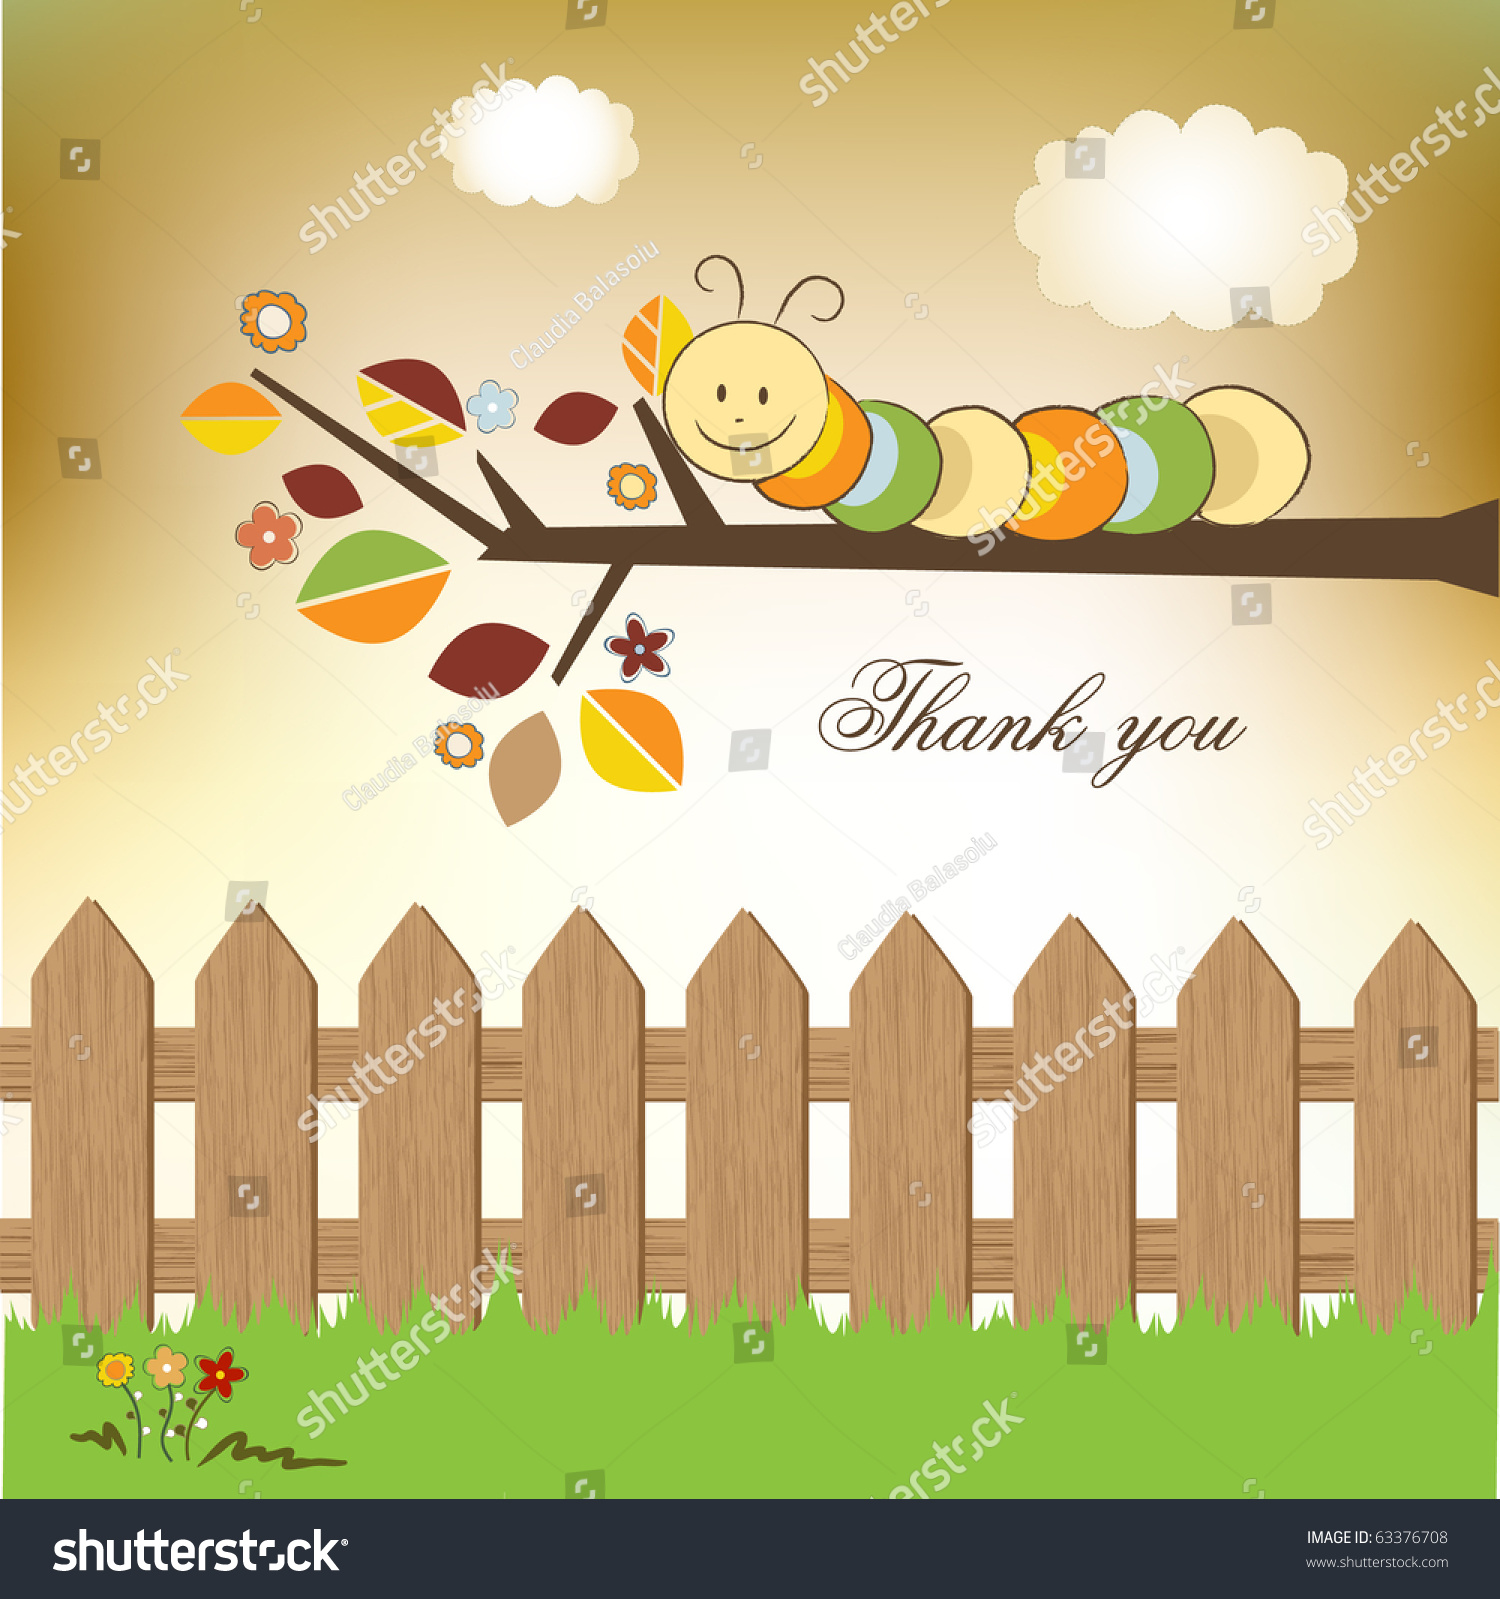 Thank you greeting card stock vector 63376708 shutterstock thank you greeting card kristyandbryce Images